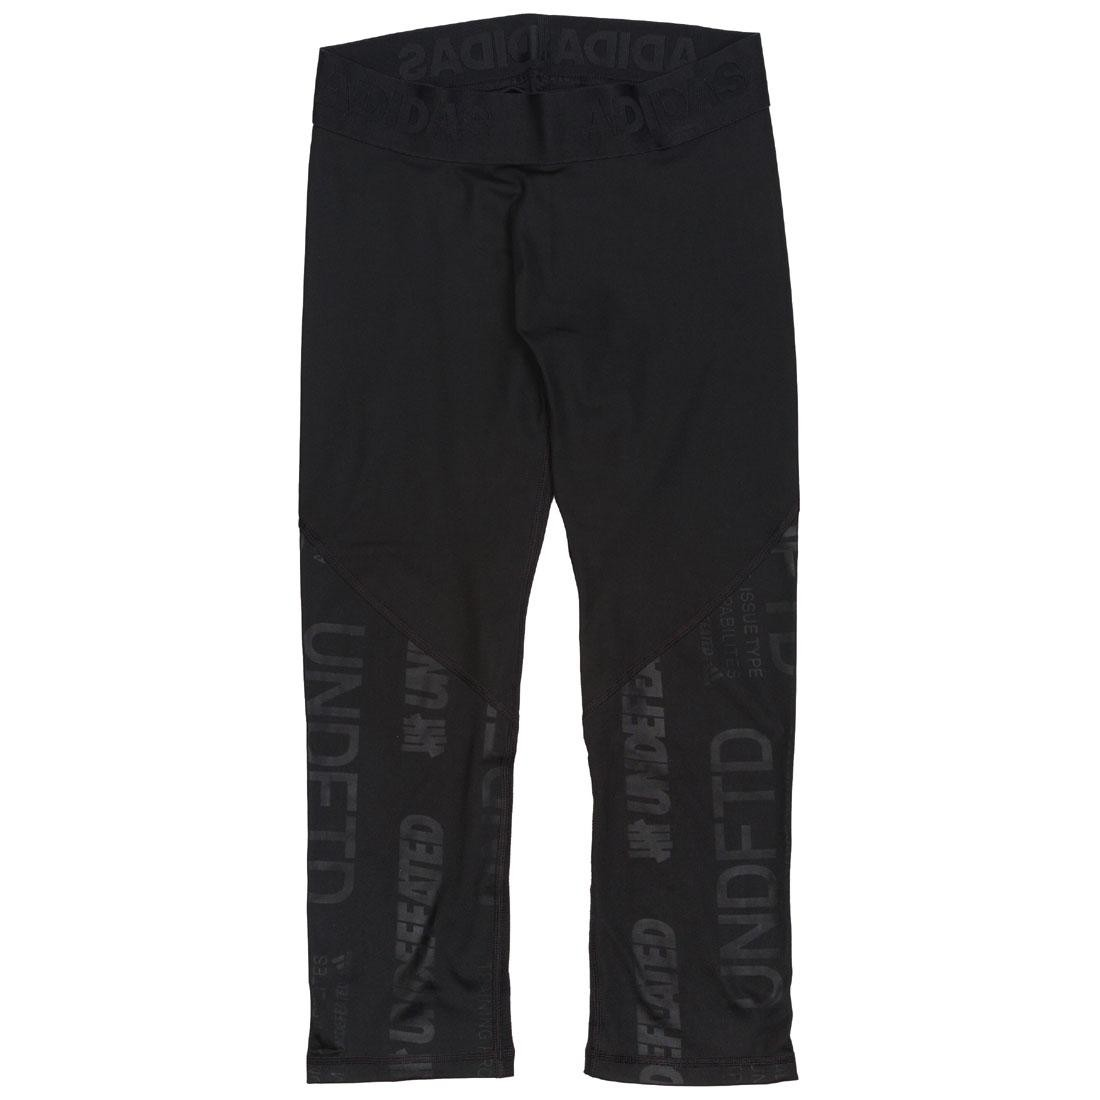 Adidas x Undefeated Men Alphaskin Tech 3/4 Tights (black)